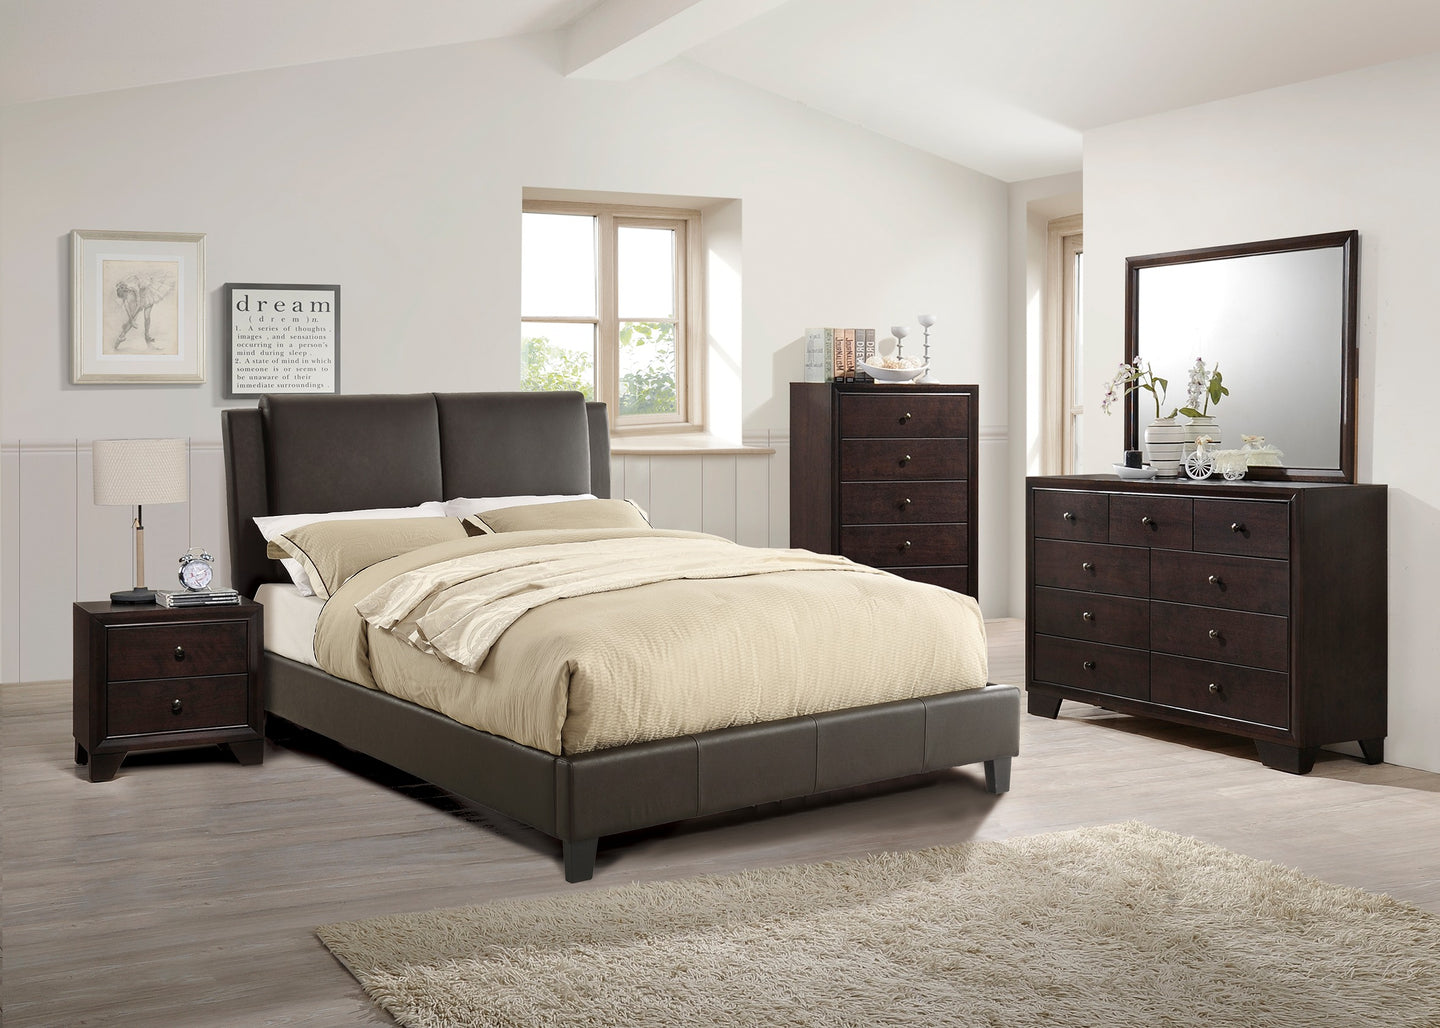 Poundex Brown Bonded Leather California King Bed